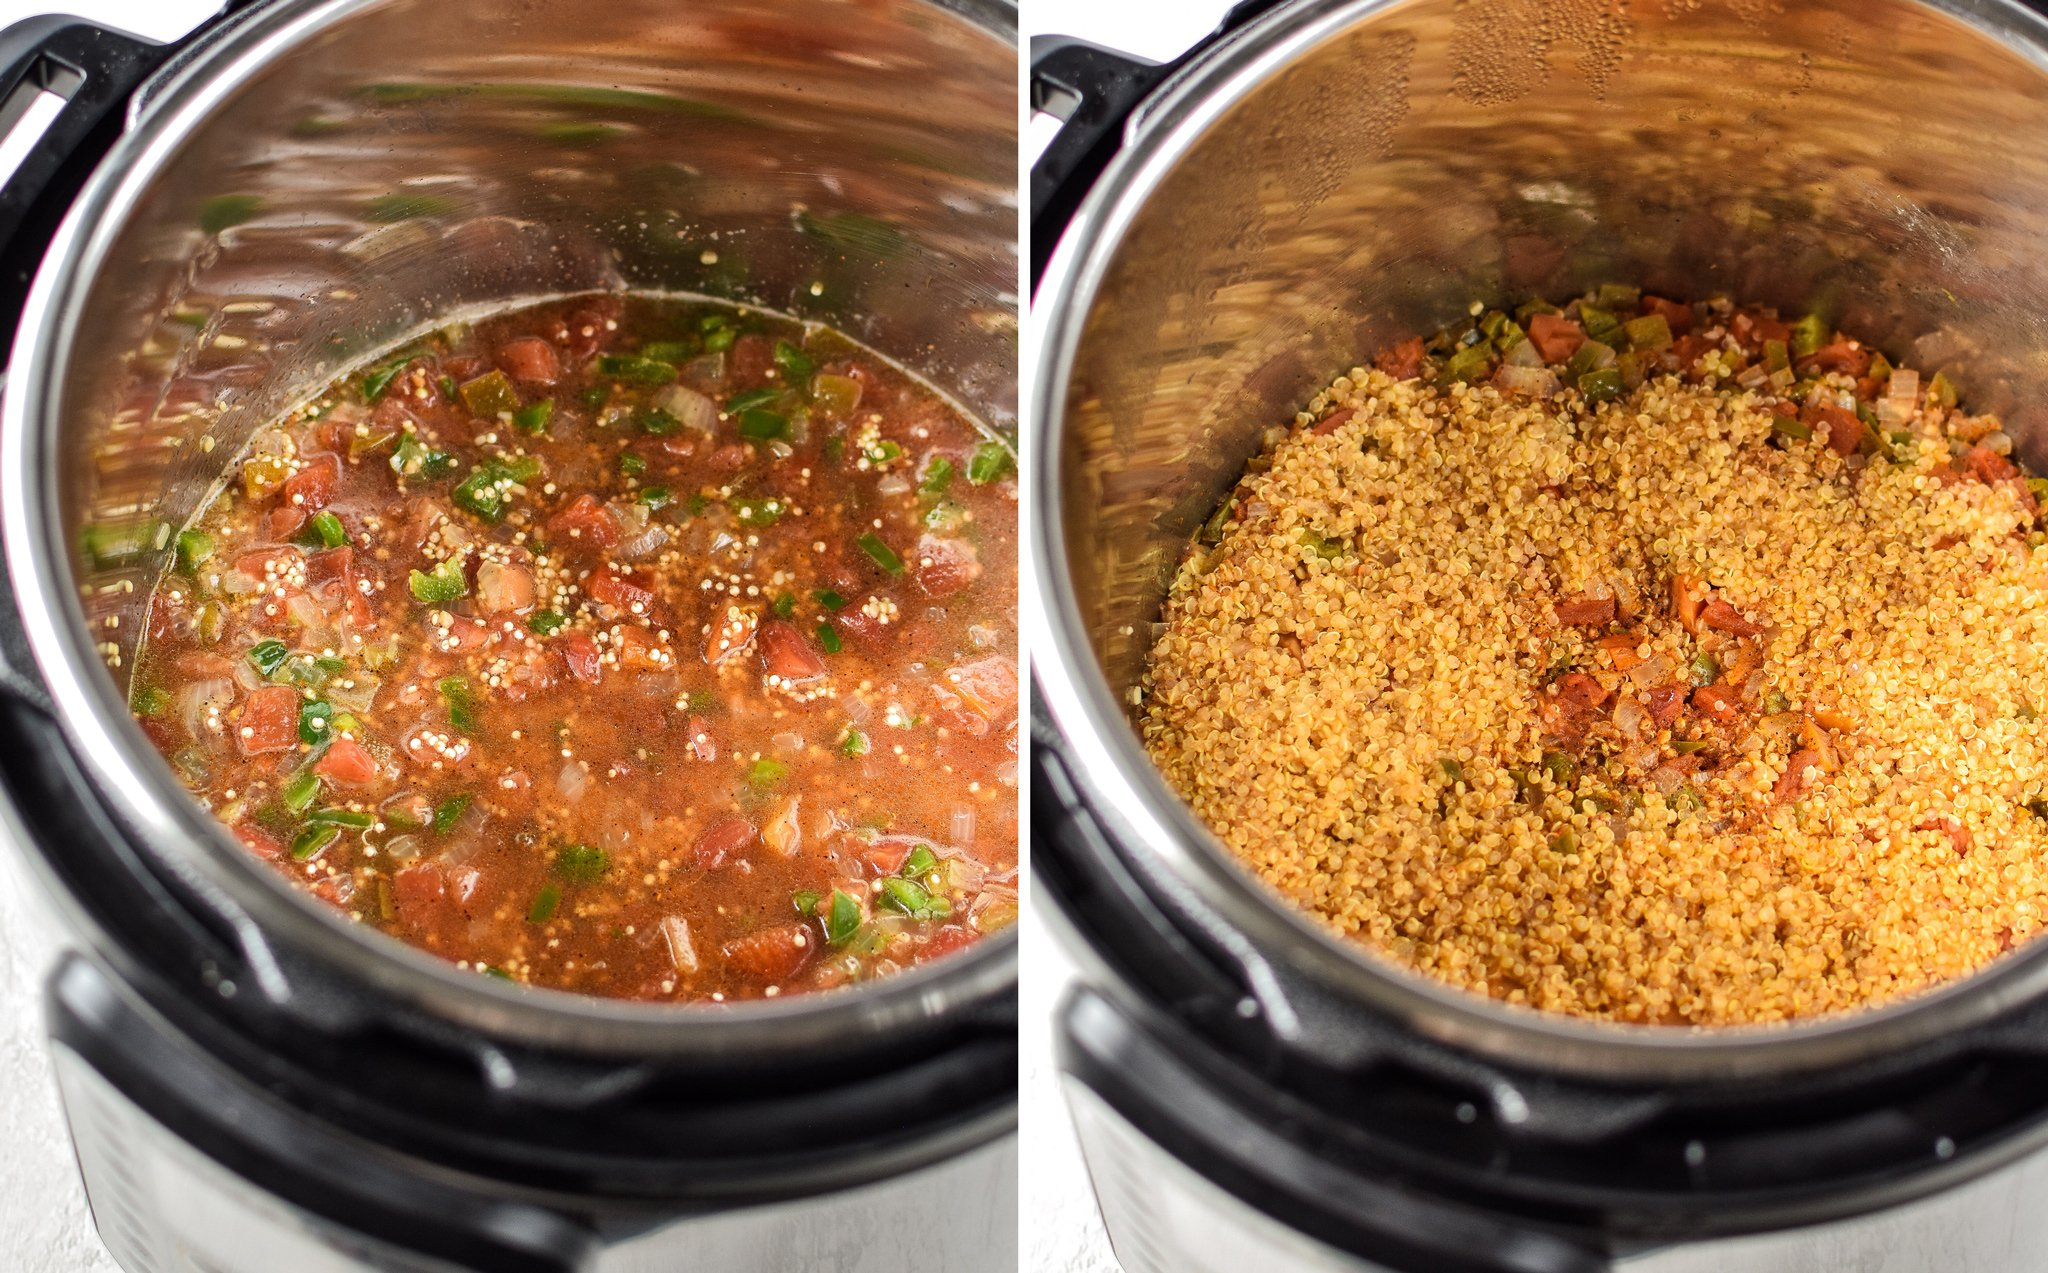 Before cooking and after cooking quinoa in the IP.